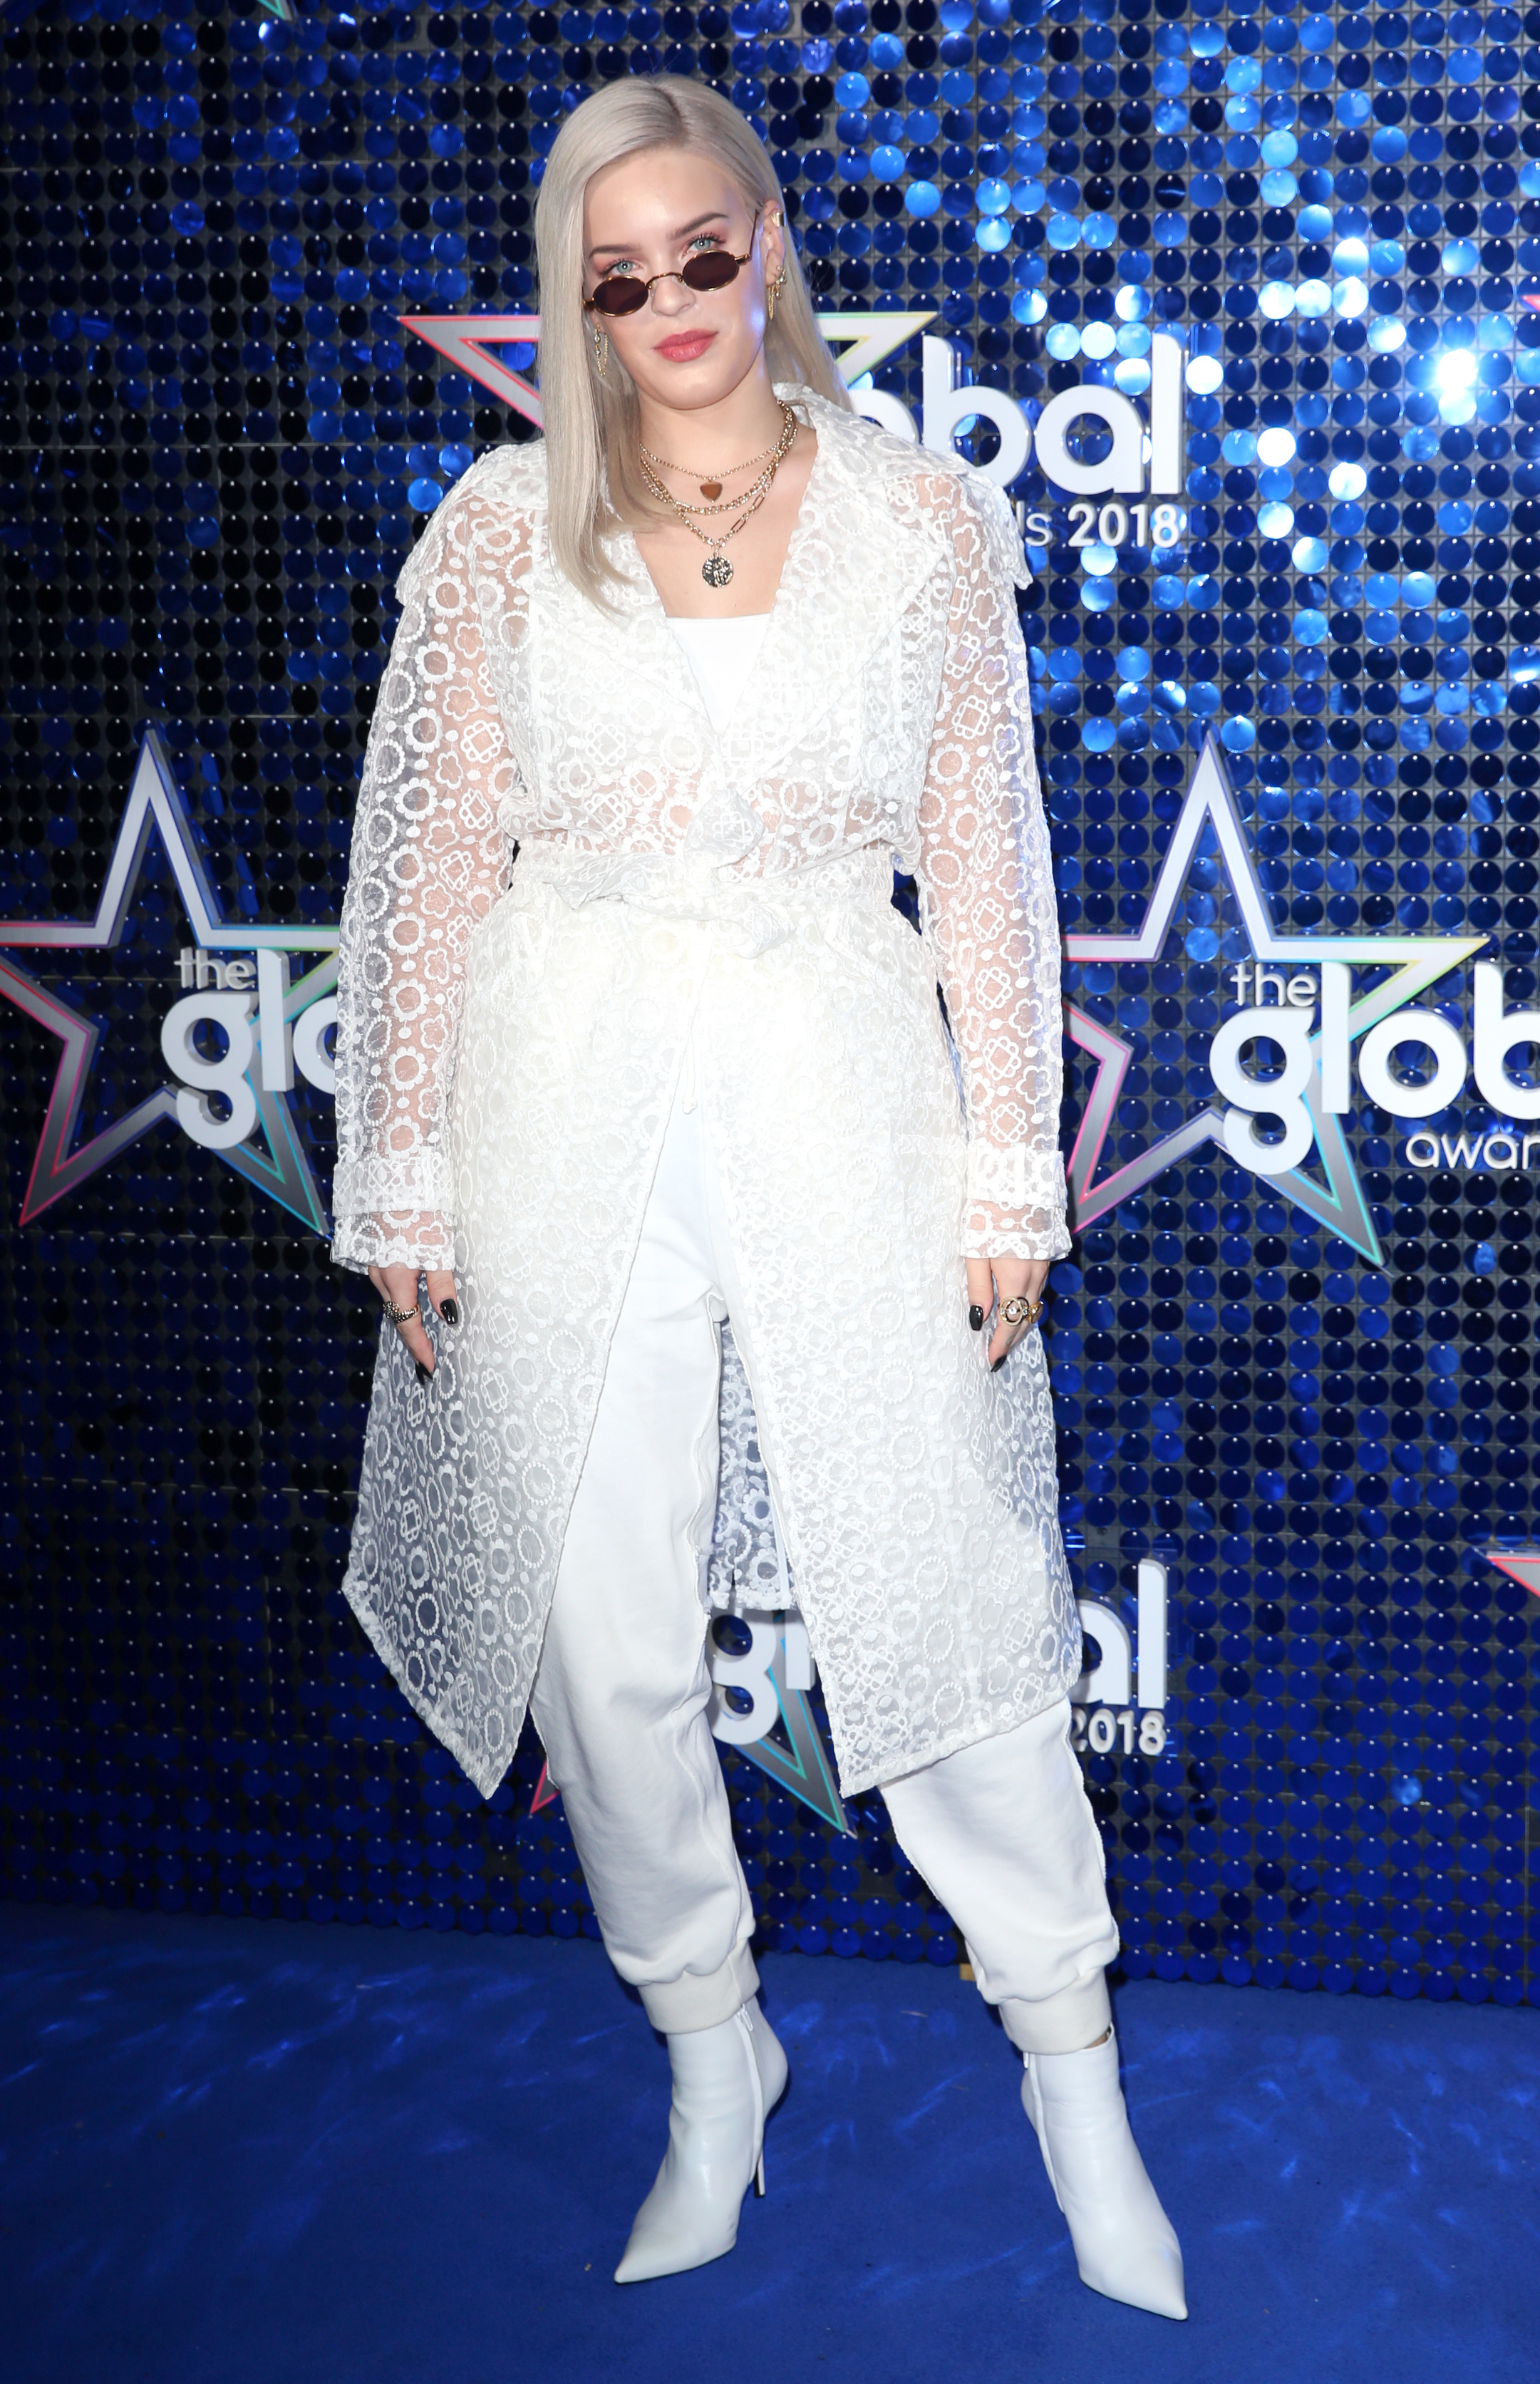 Anne-Marie Global Awards 2018 blue carpet